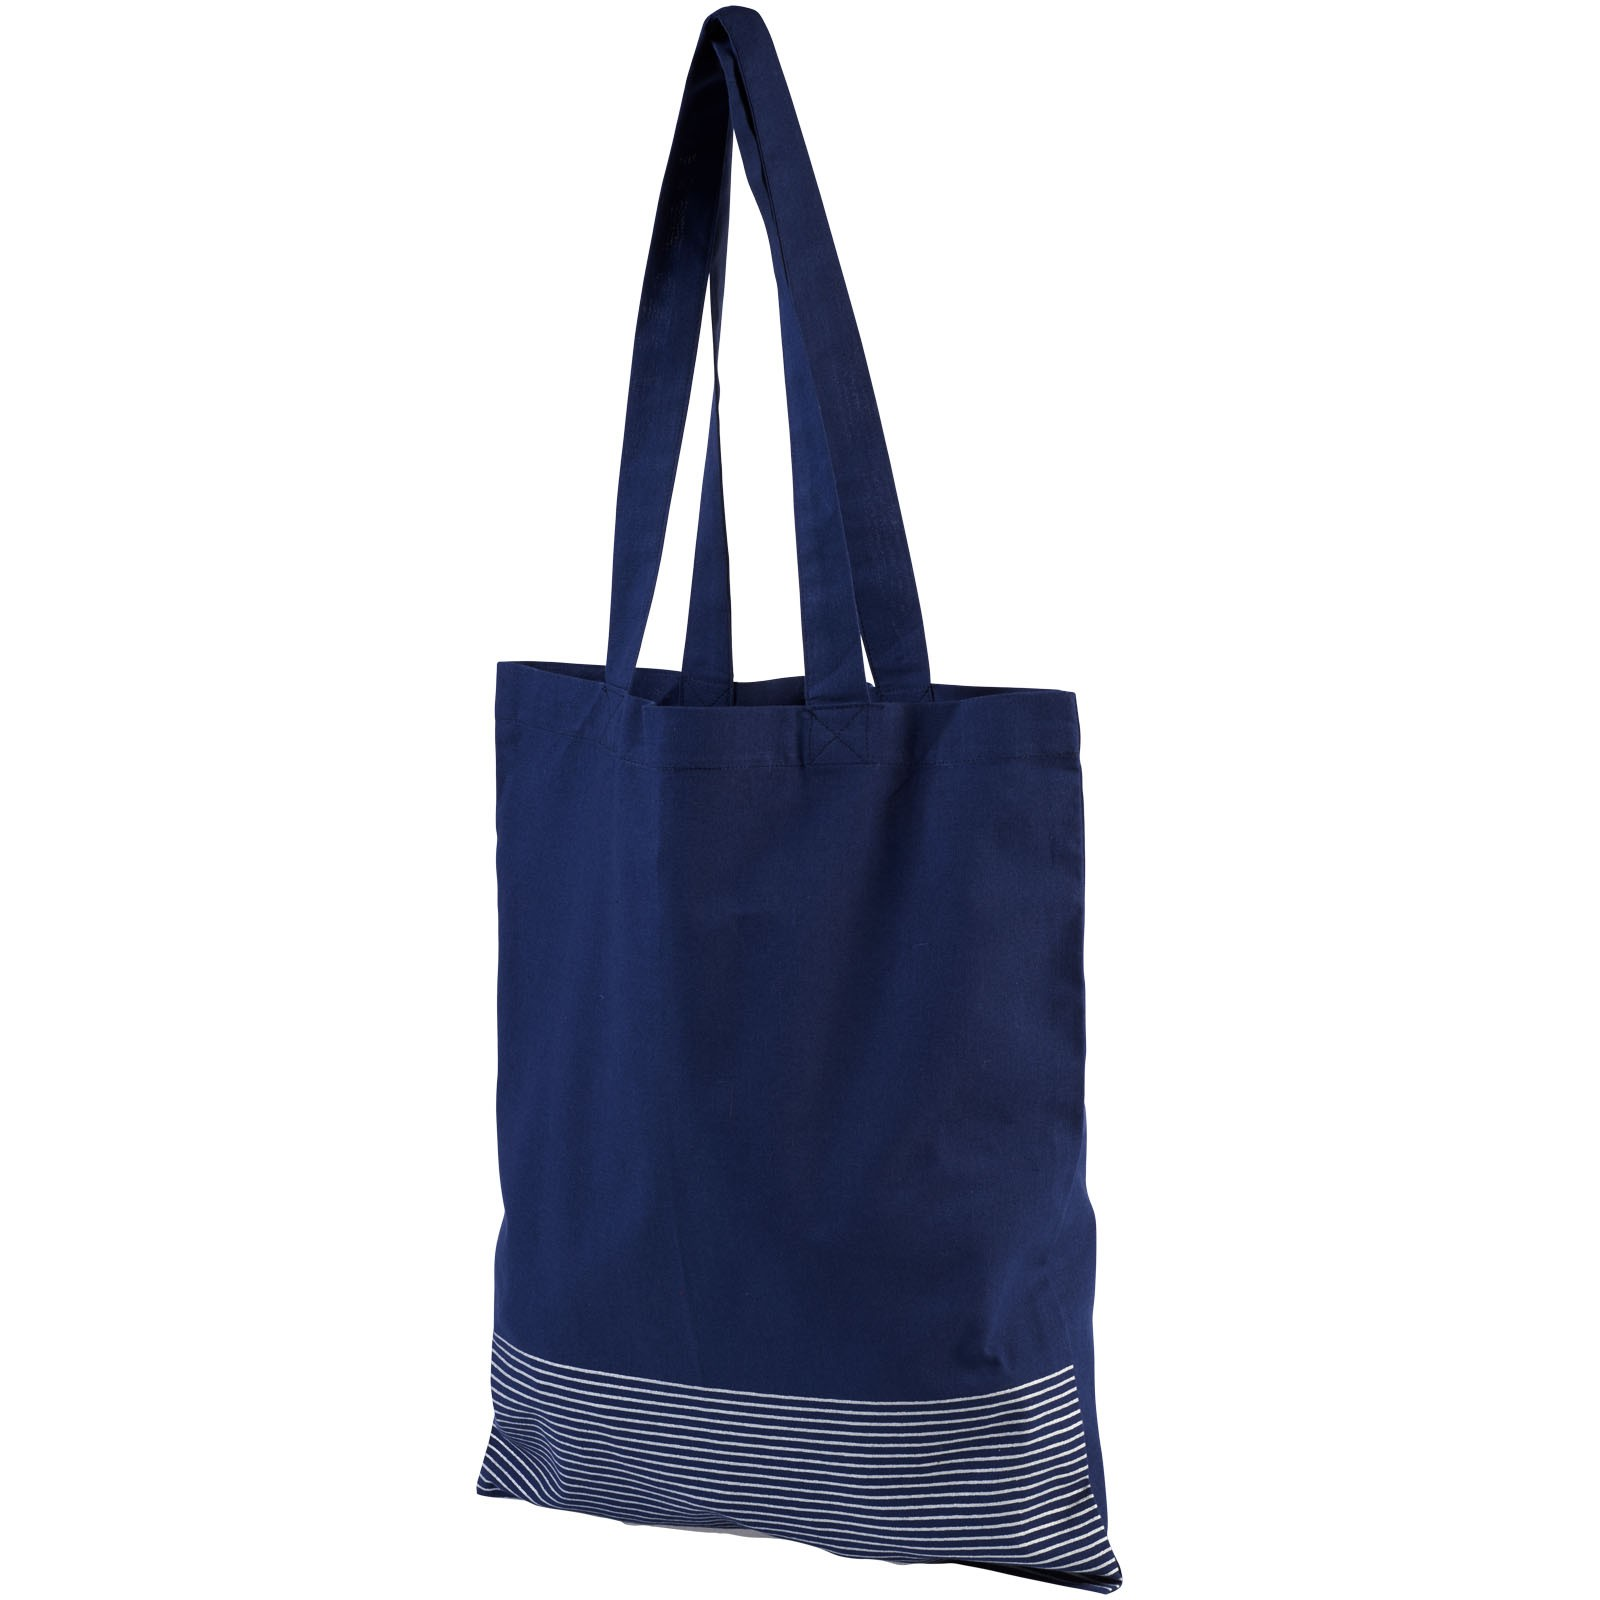 Aylin 140 g/m² silver lines cotton tote bag - Navy